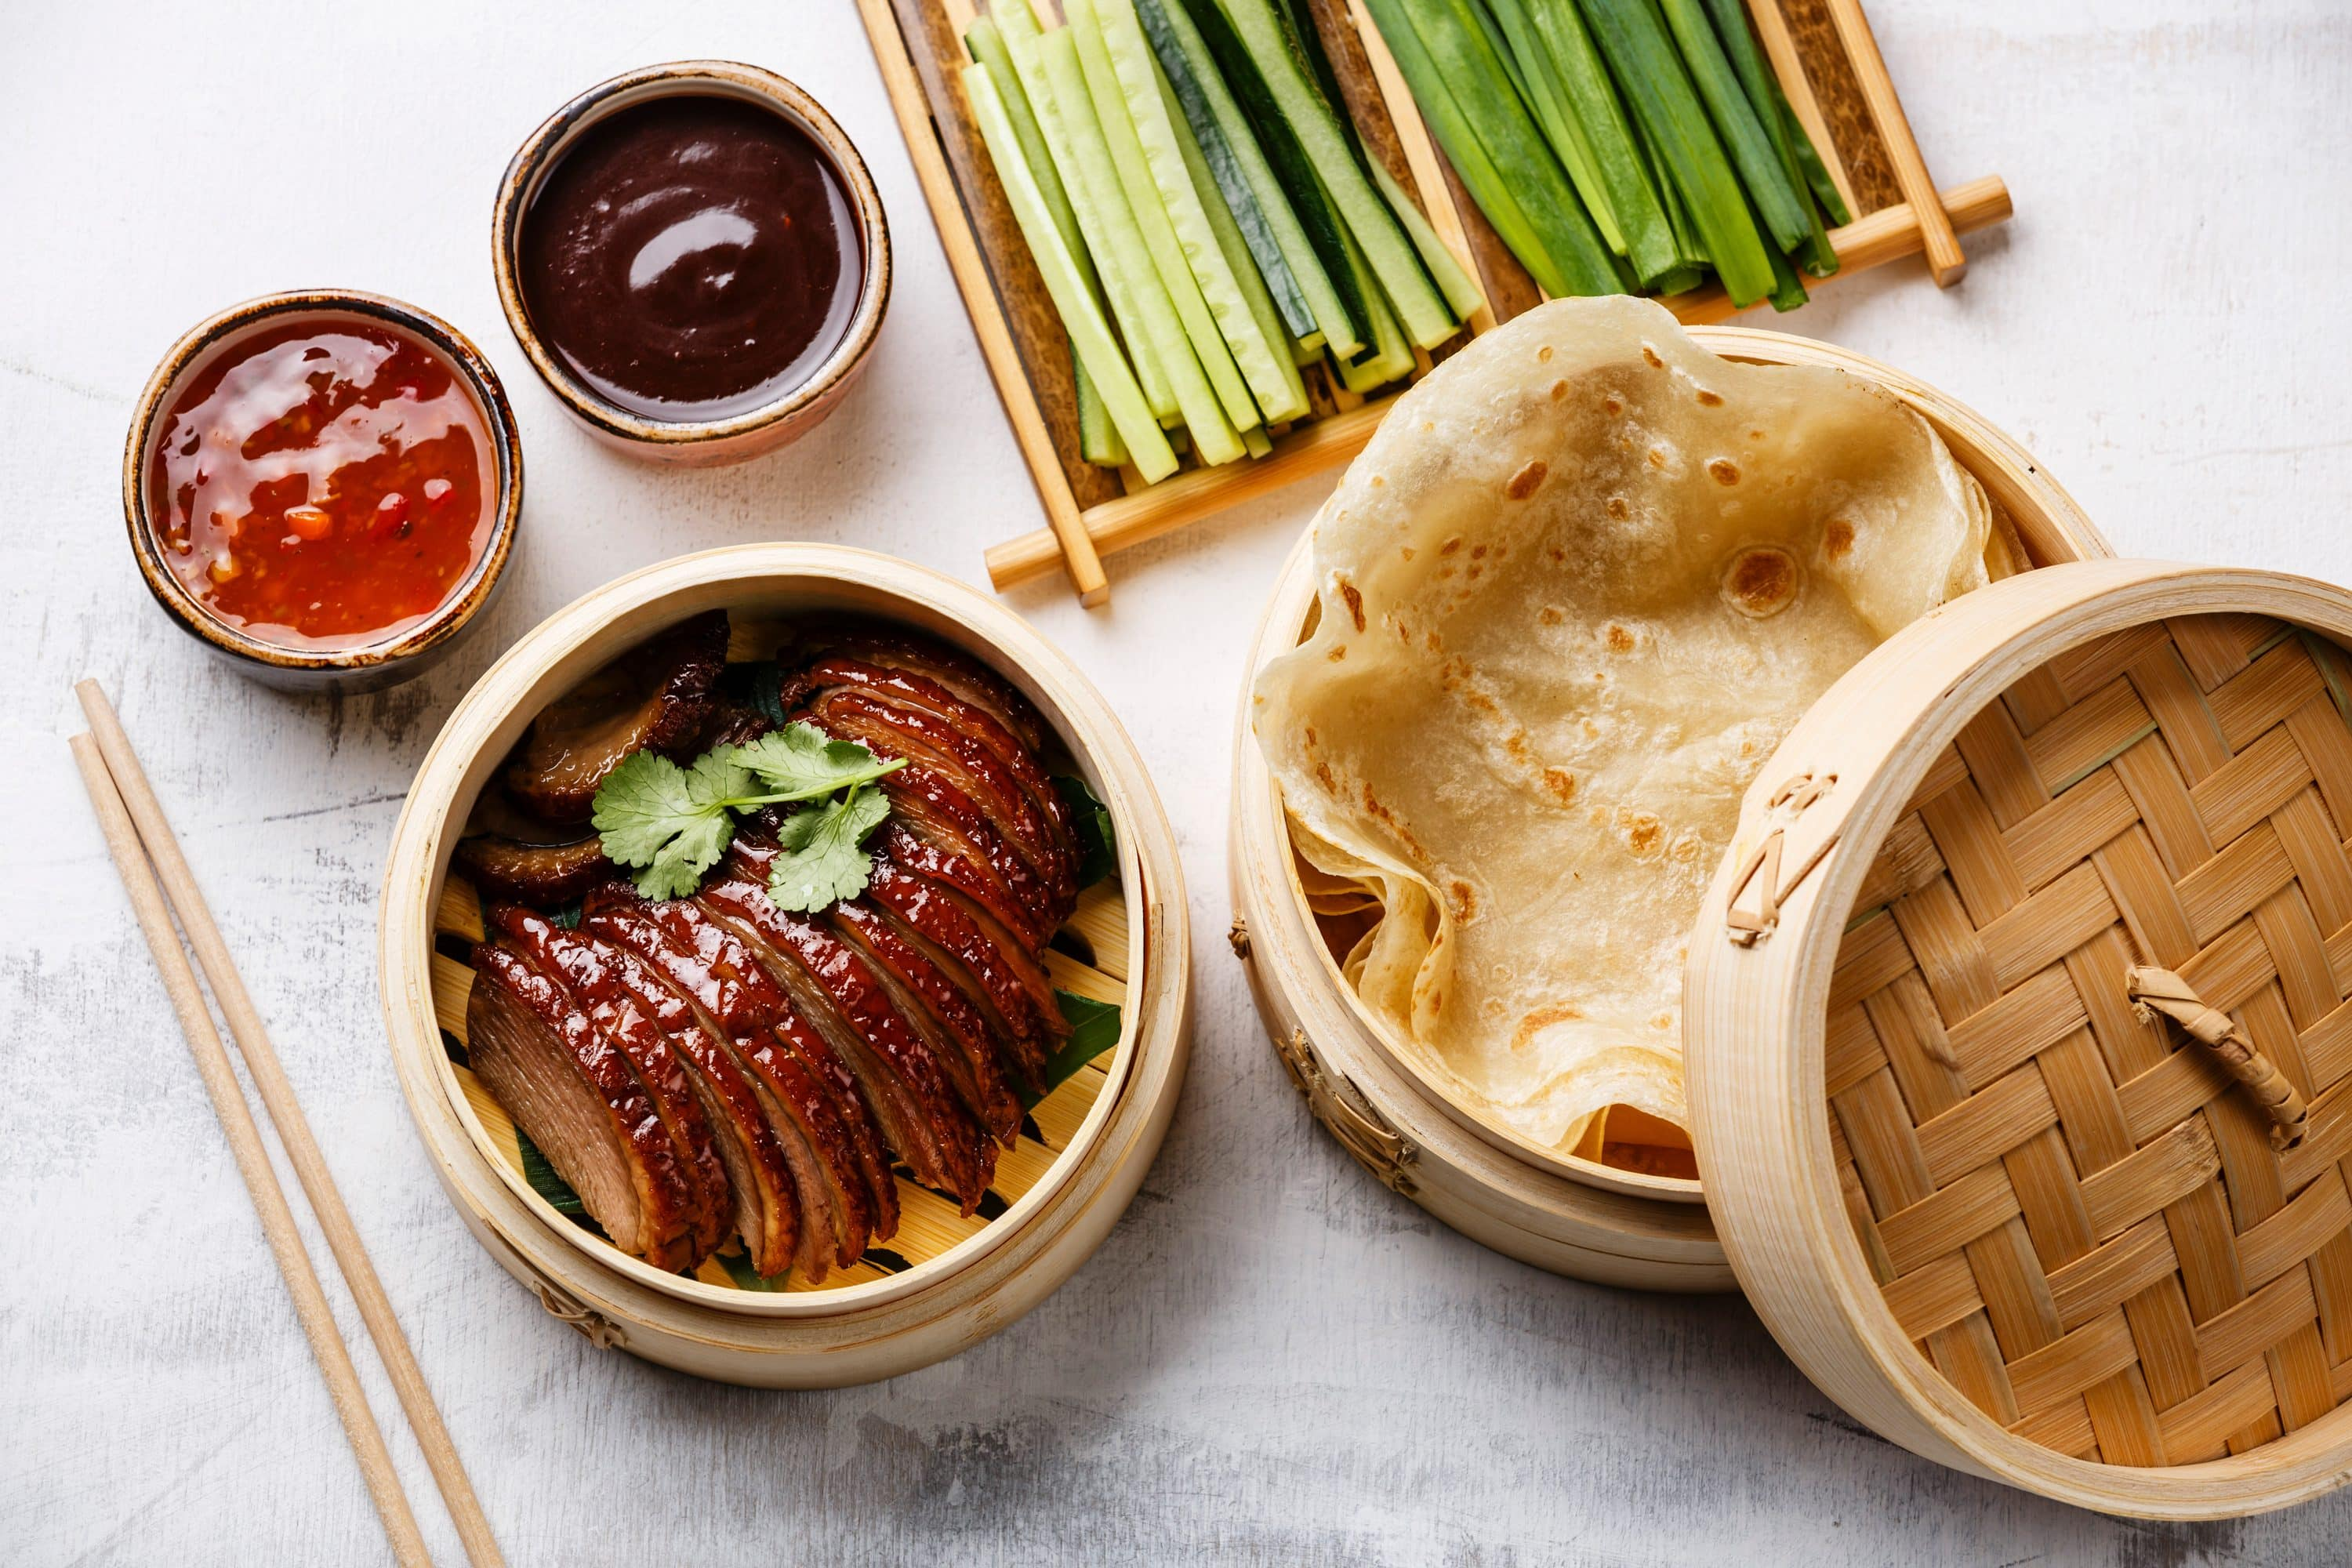 Selection of Chinese food in bamboo steamers